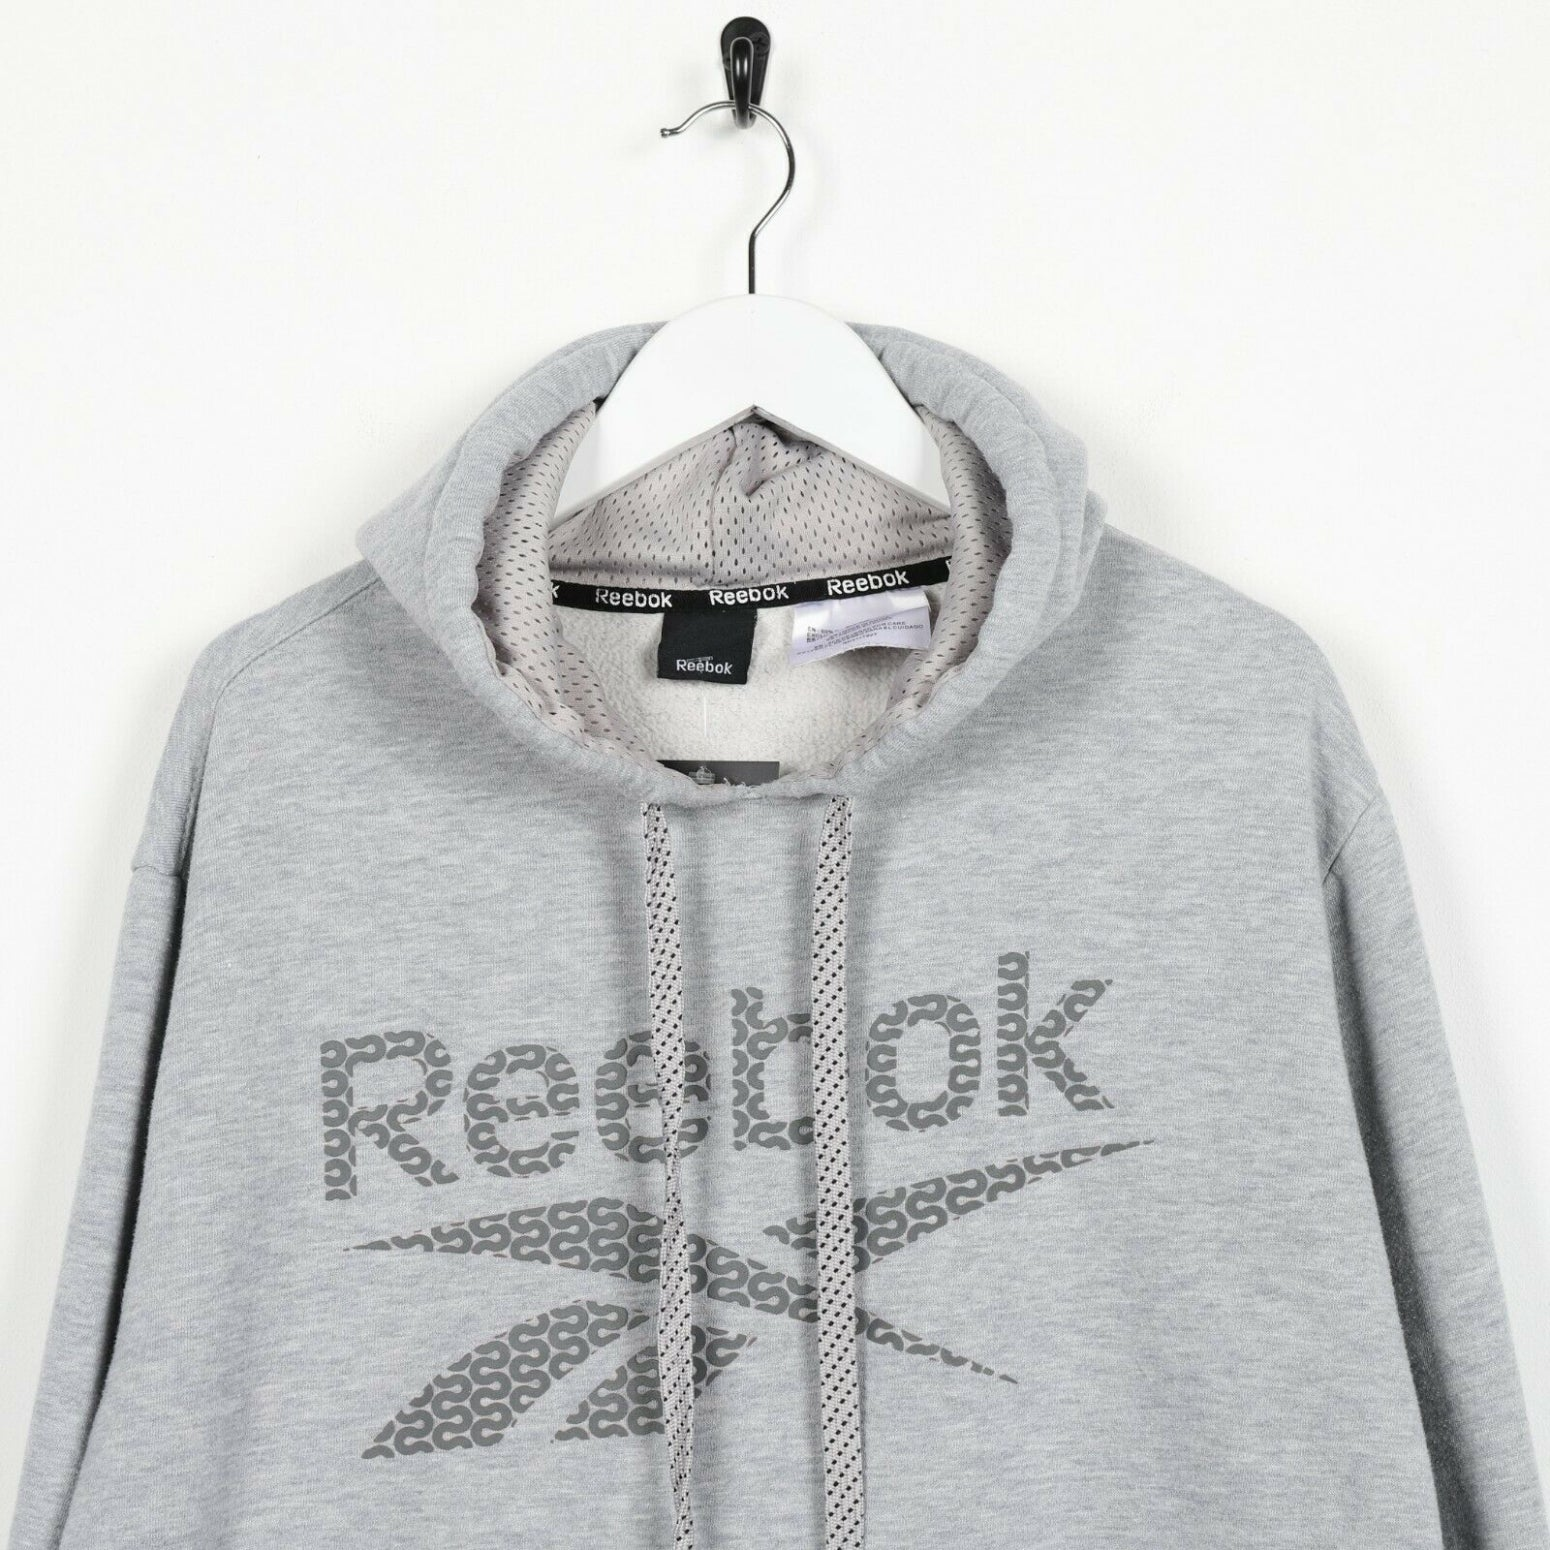 Vintage REEBOK Big Spell Out Graphic Logo Hoodie Sweatshirt Grey Large L